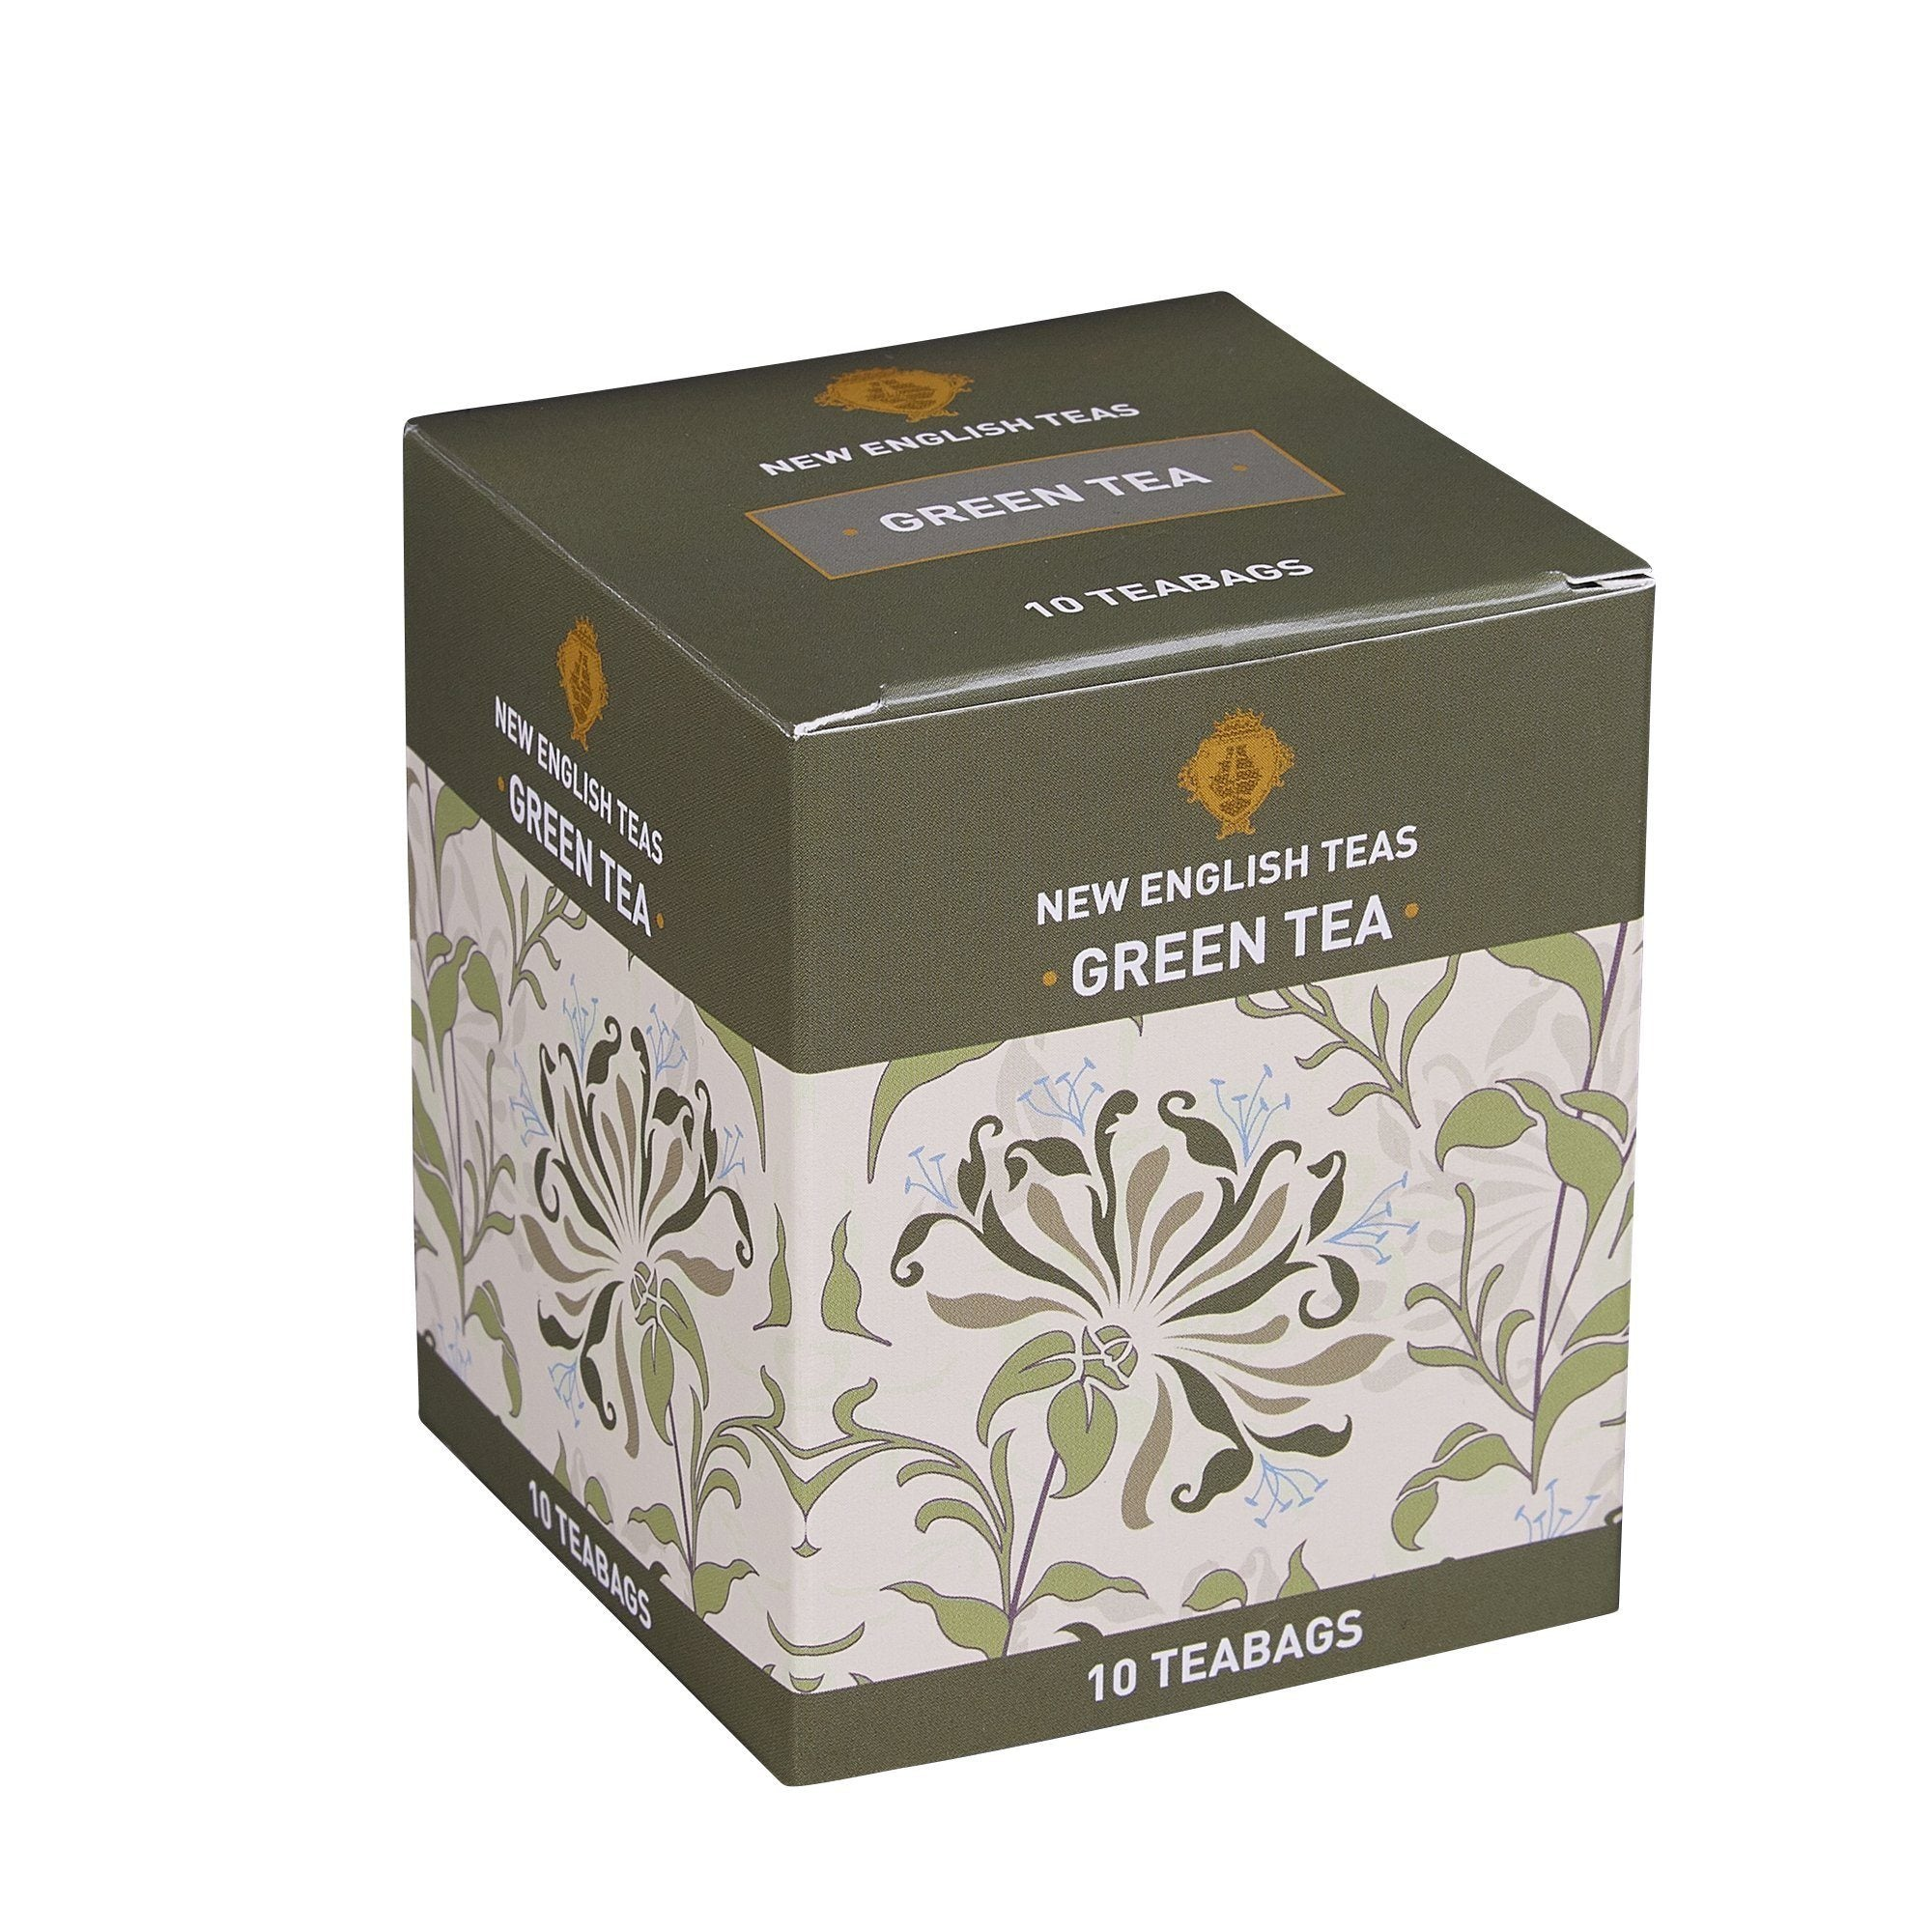 Green Tea 10 Individually Wrapped Teabags Green Tea New English Teas